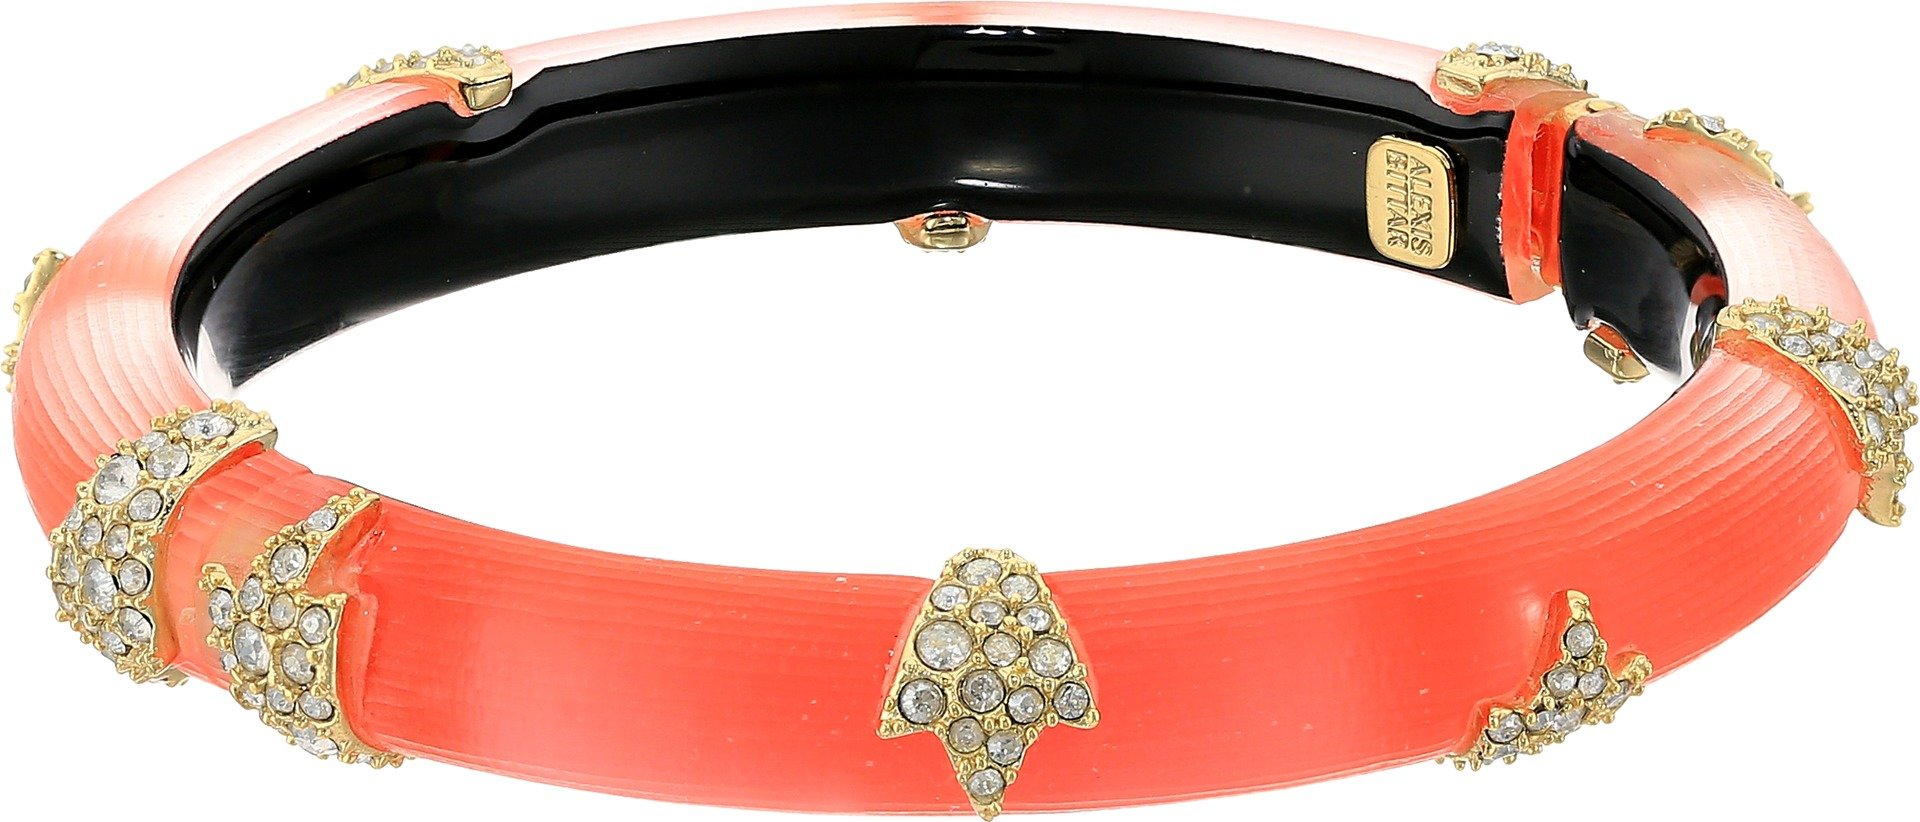 Alexis Bittar Women's Crystal Encrusted Skinny Studded Hinge Bracelet Coral One Size